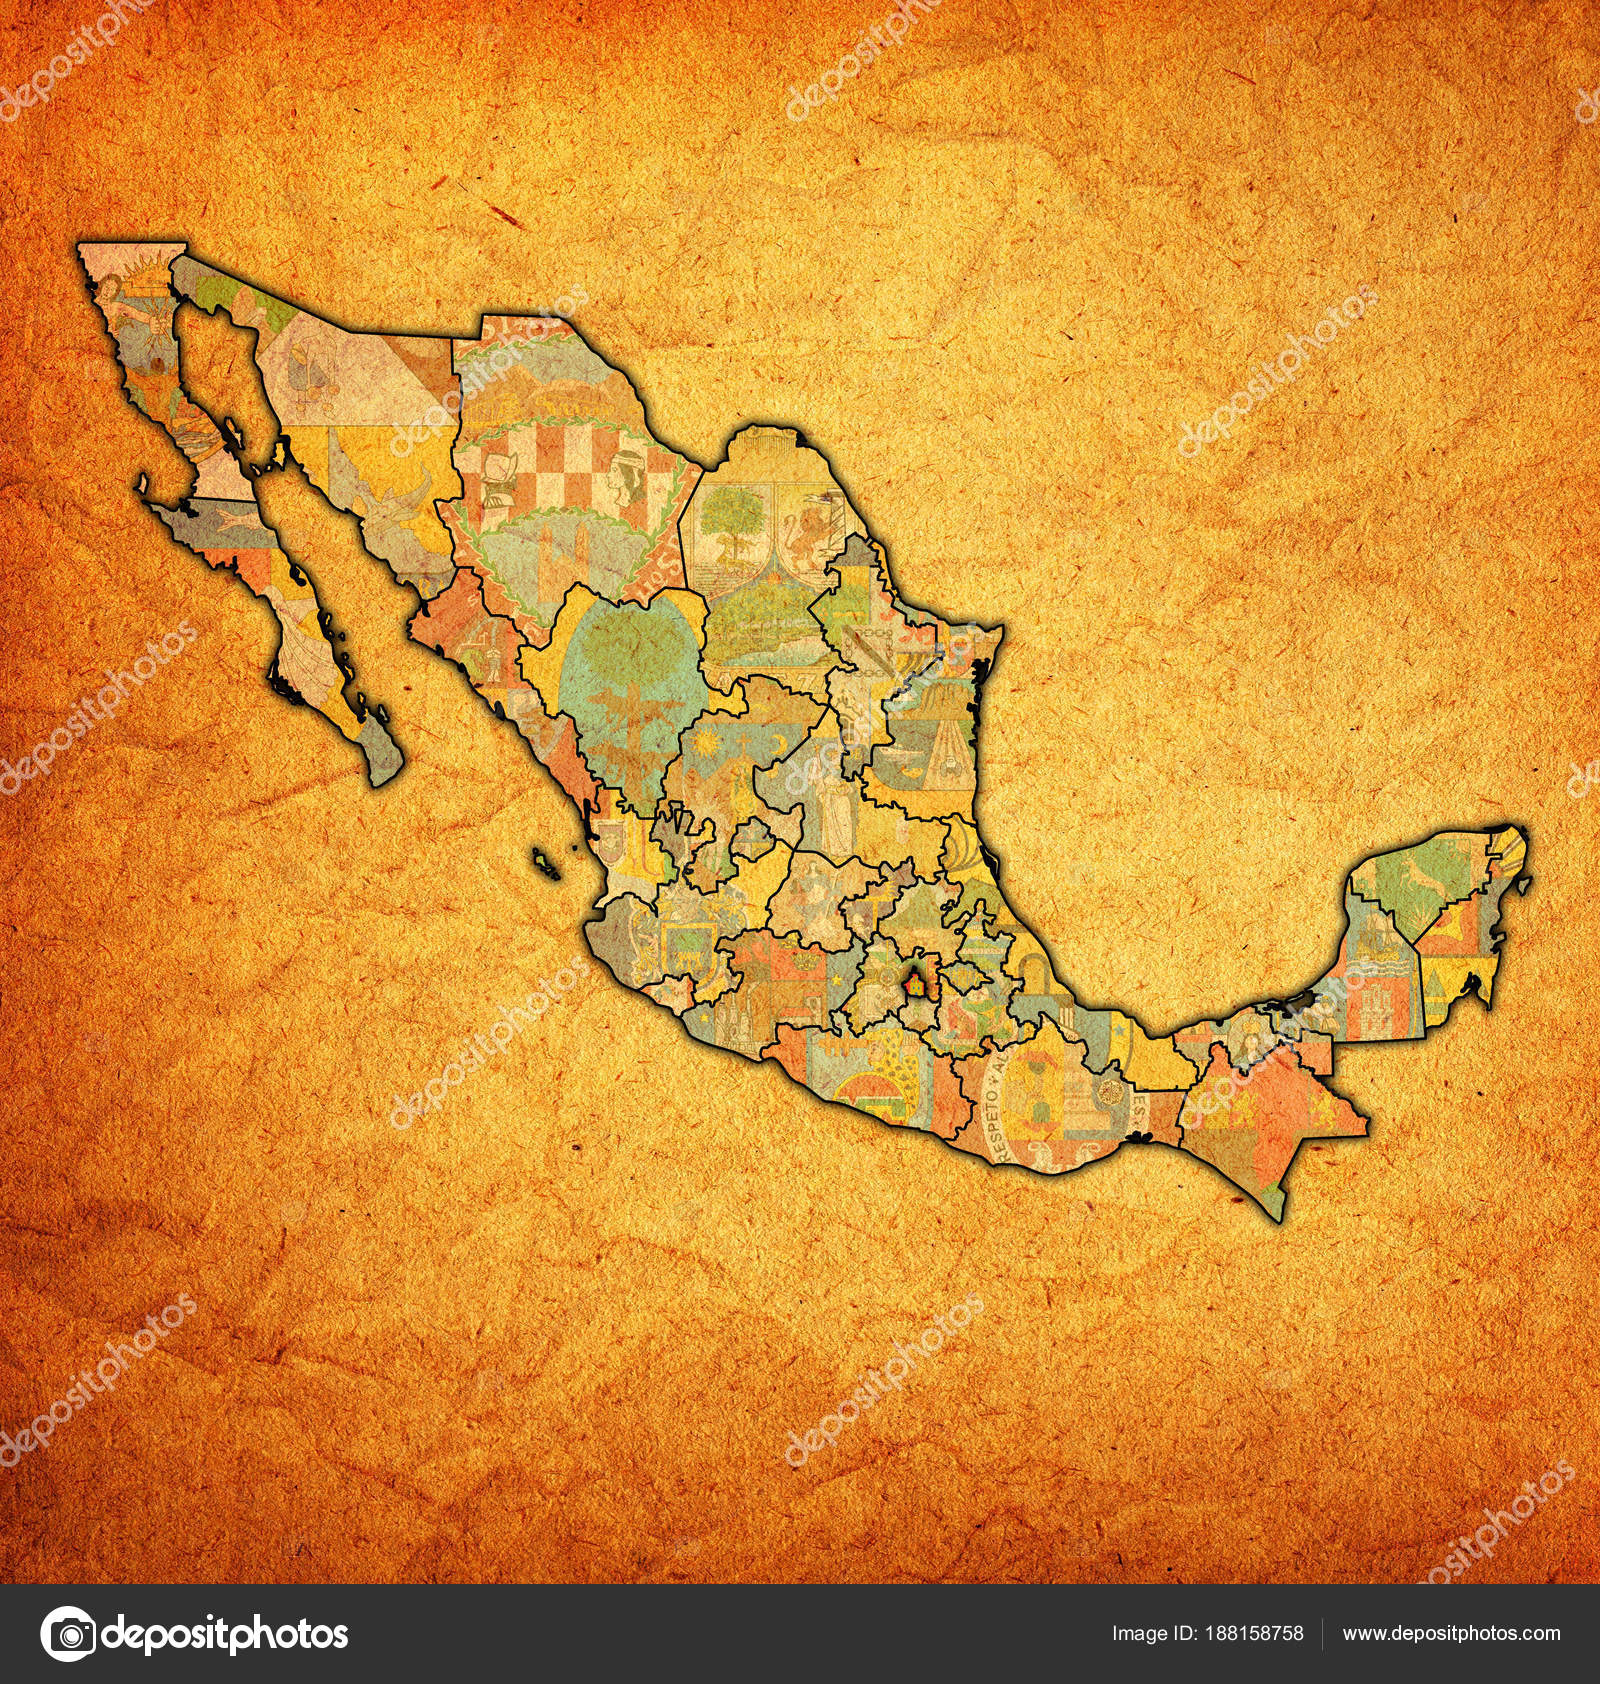 Tlaxcala On Administration Map Of Mexico Stock Photo C Michal812